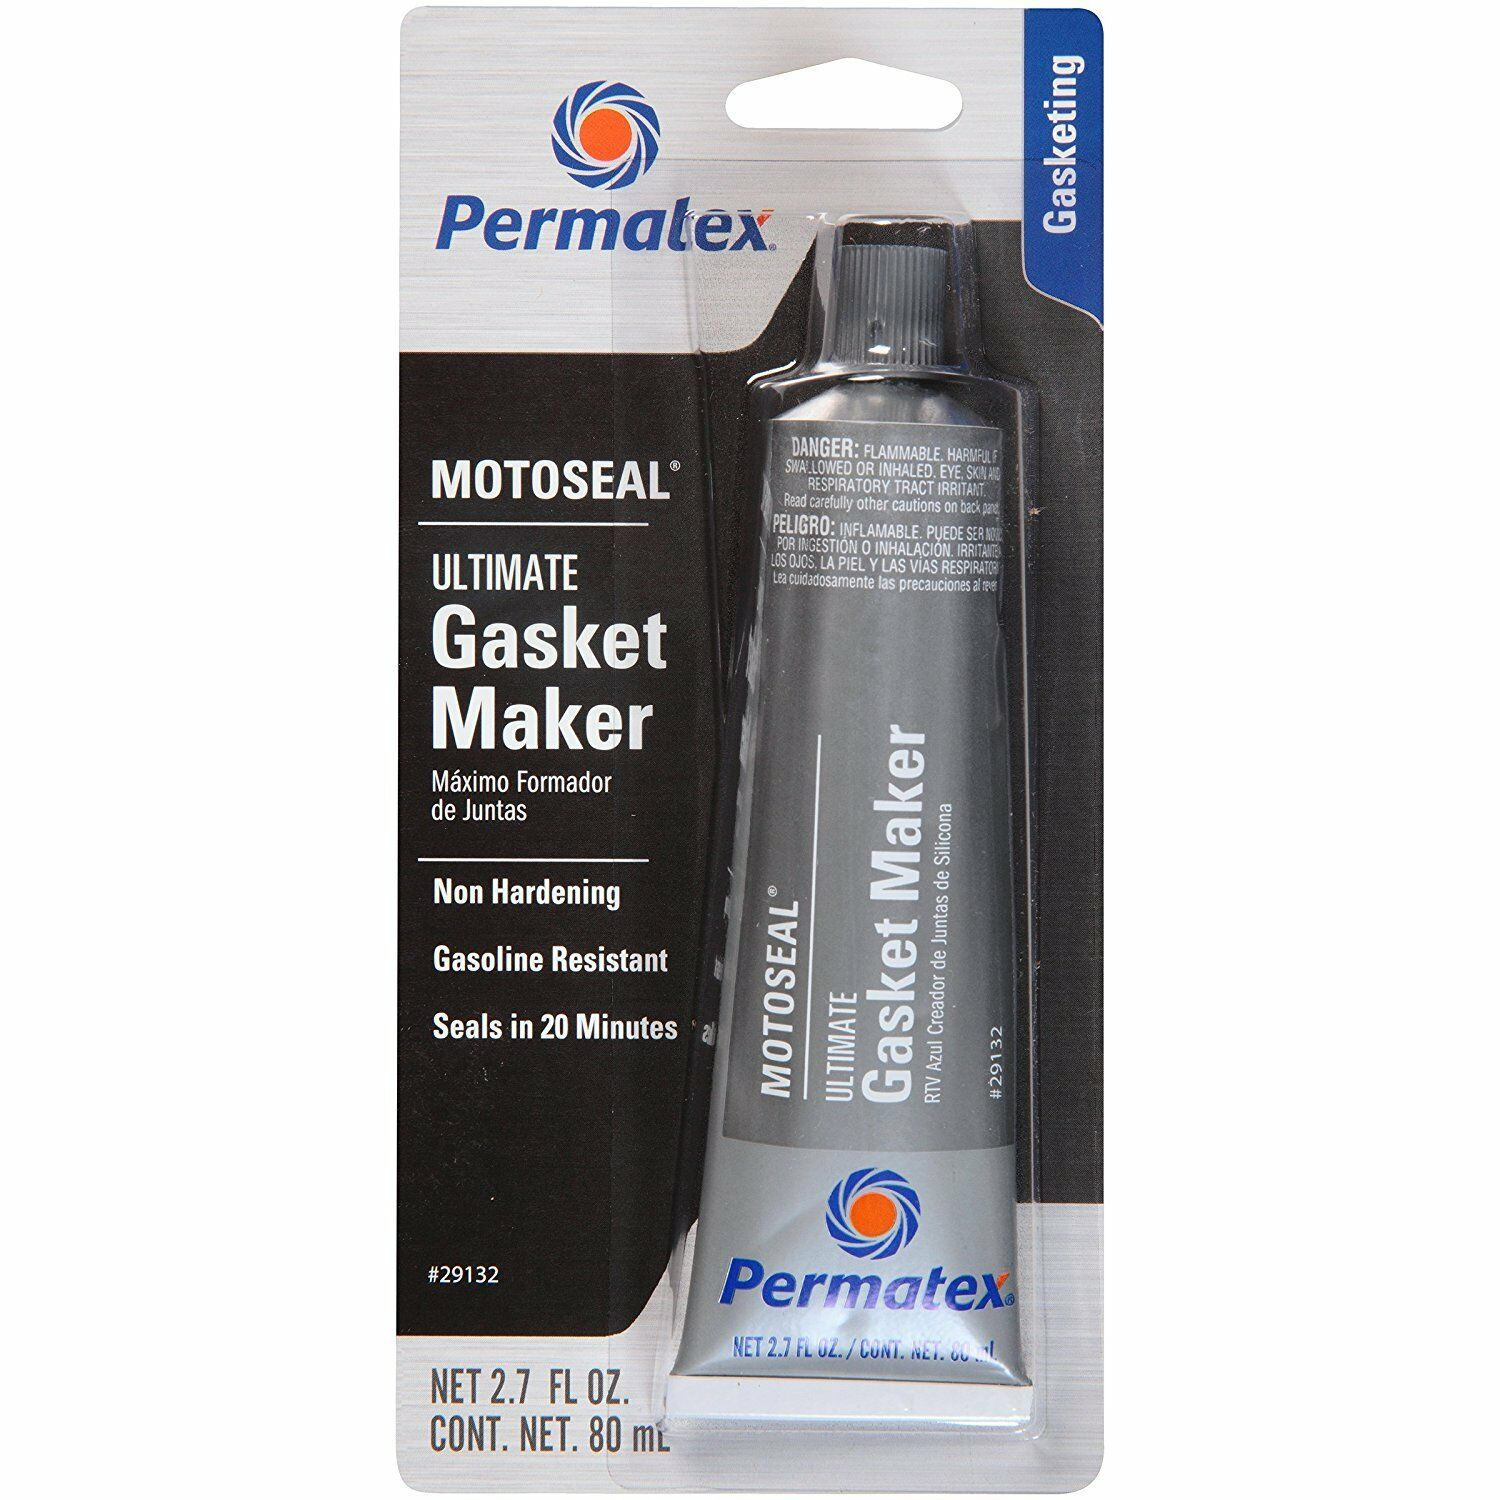 3-DAY SALE! Permatex 29132 MotoSeal 1 Ultimate Gasket Maker GREY 2.7 oz